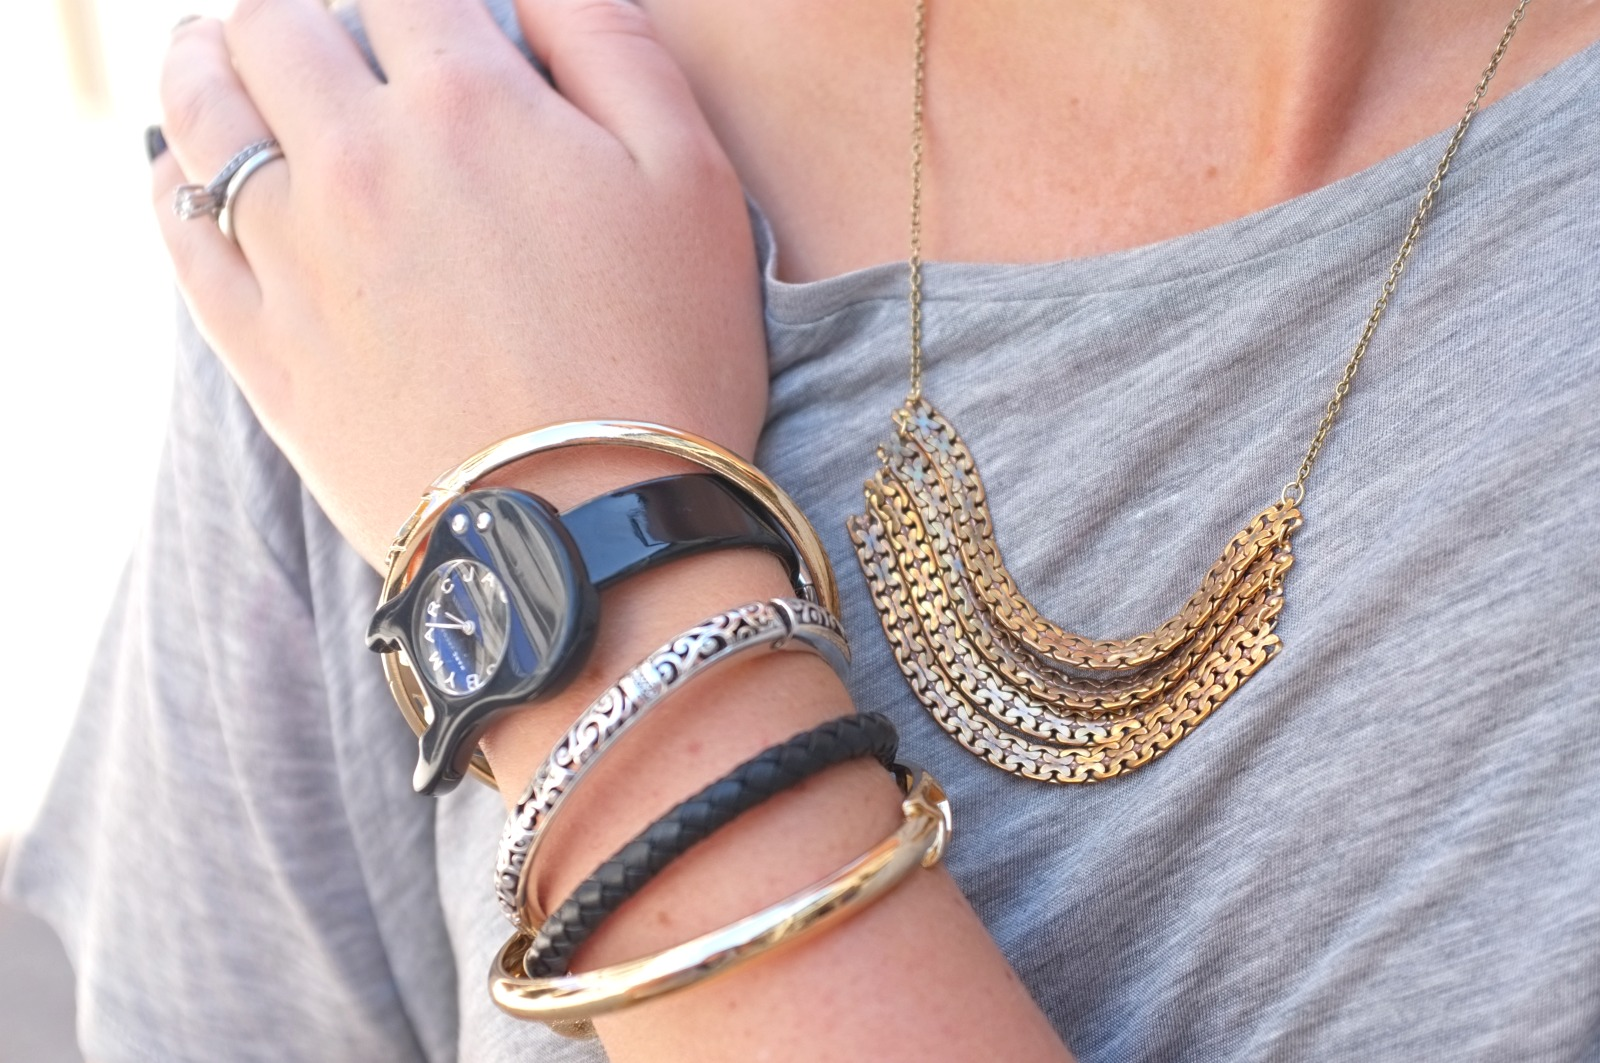 Rodeo Drive, Beverly Hills Rodeo Drive, Beverly Hills outfit, Los Angeles style, arm party, stacking bracelets, gold chain necklace